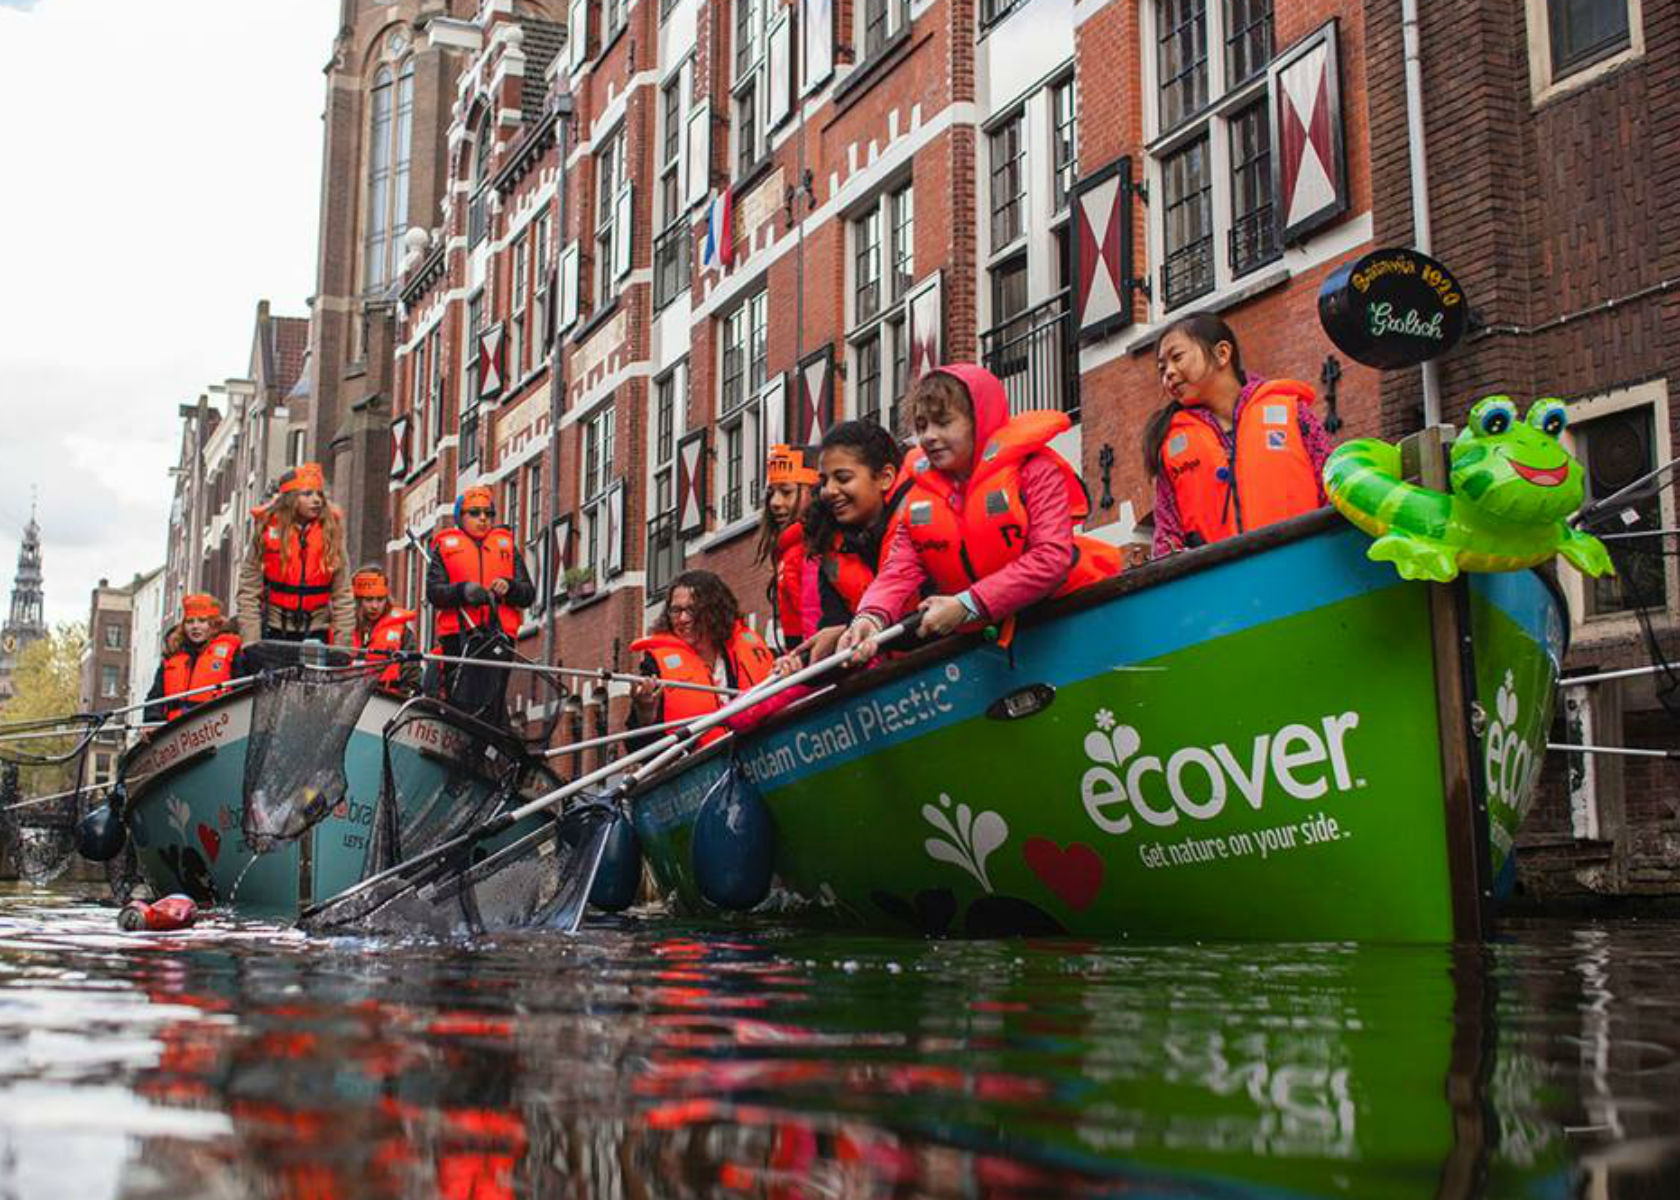 Plastic_Whale_Company_on_boat_in_Amsterdam